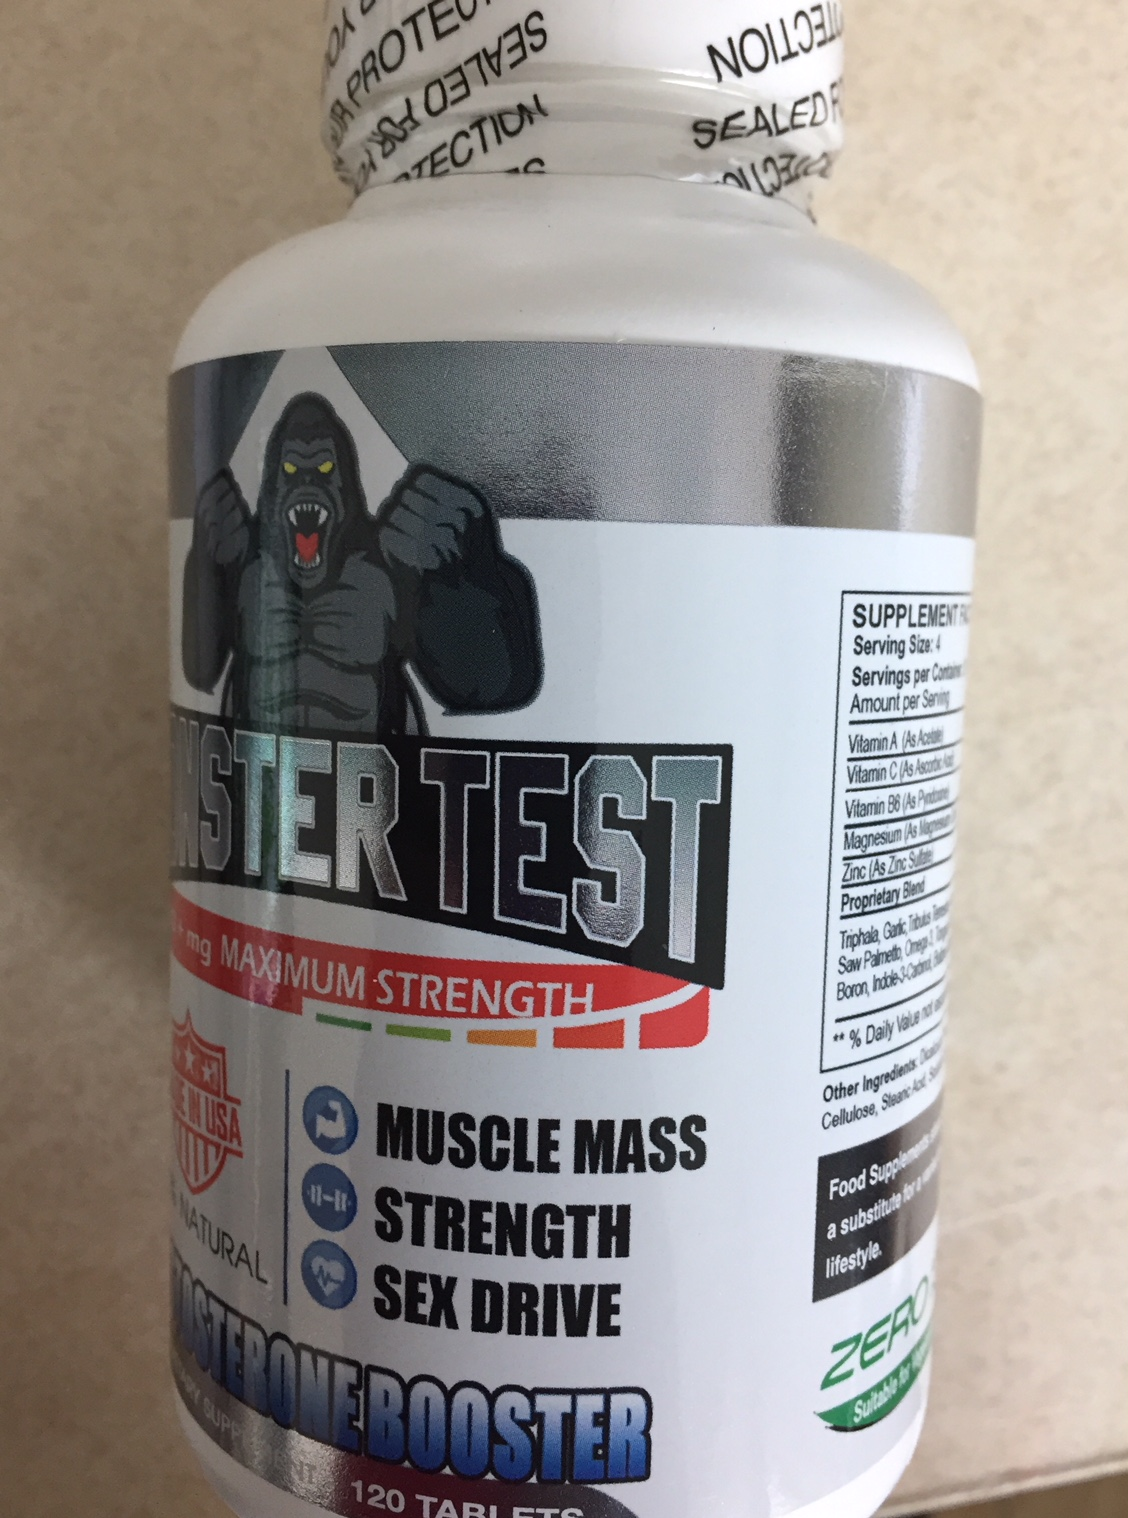 MONSTER TEST 100% NATURAL 120 TAB